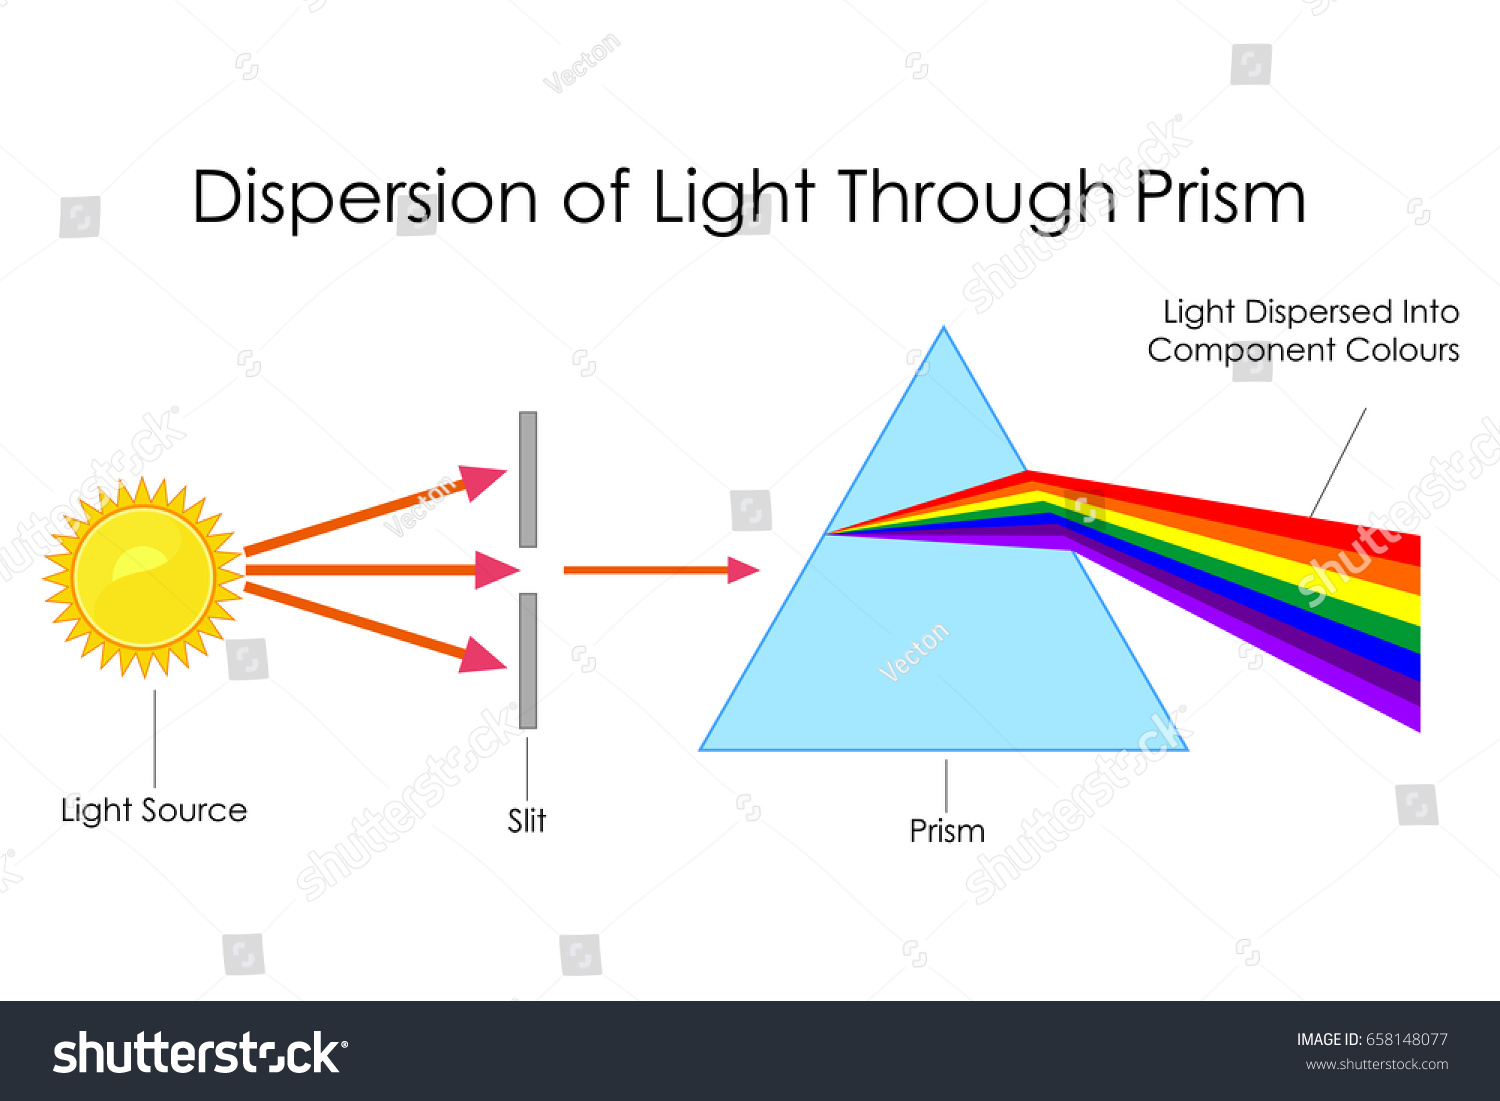 What Is Dispersion Of White Light State Its Cause Draw A Labelled Diagram To Show Dispersion Of